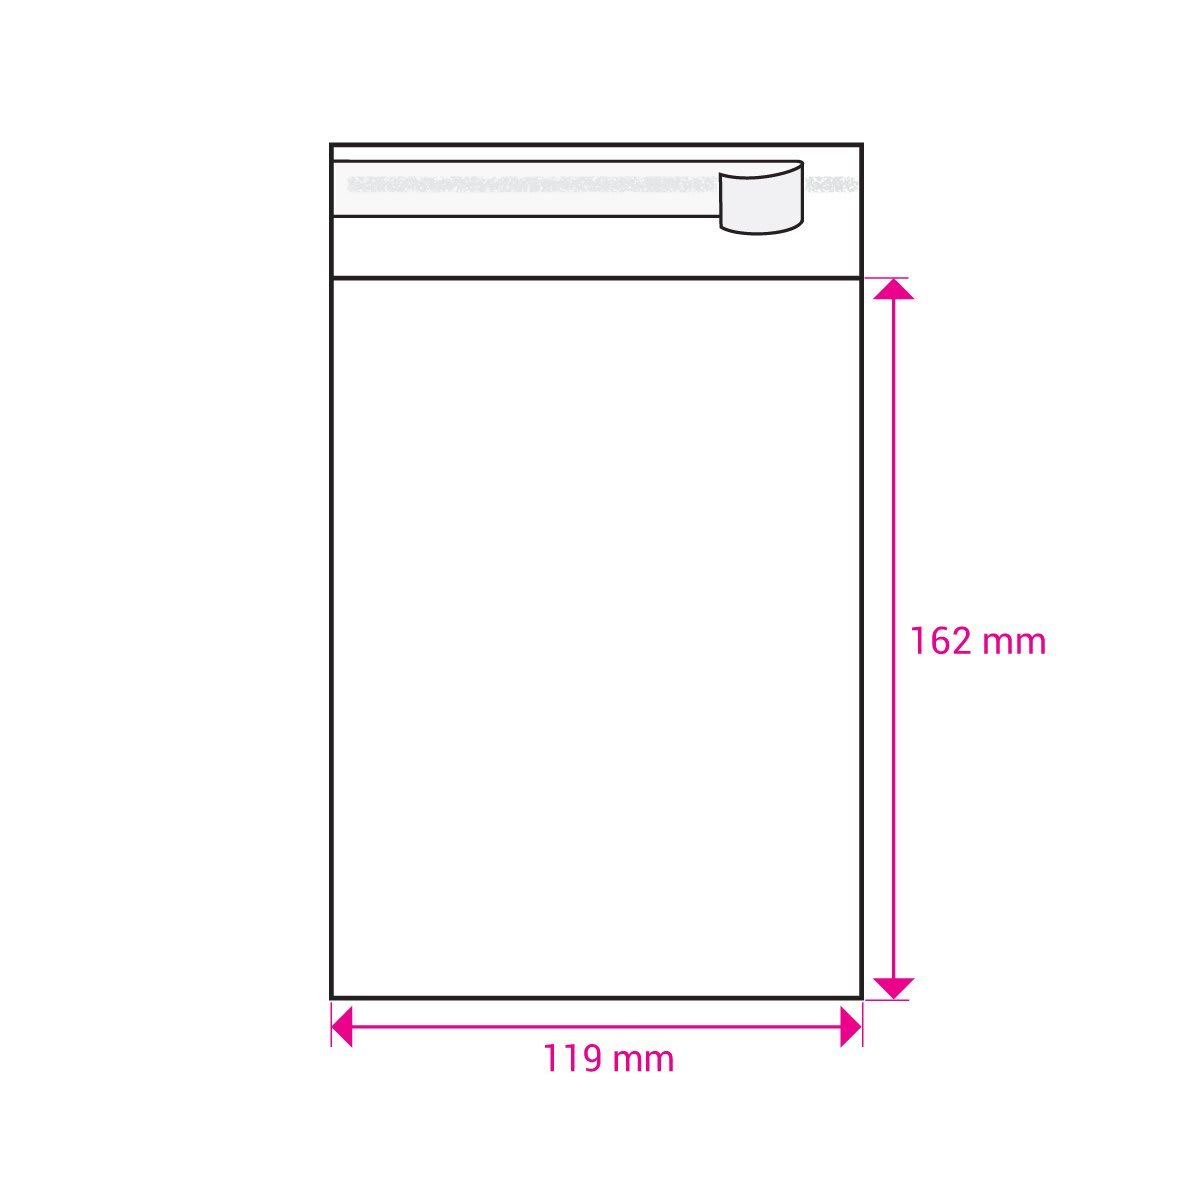 CLEAR CELLO BAGS to fit:  C6 114 x 162 mm Envelope (SELF ADHESIVE)